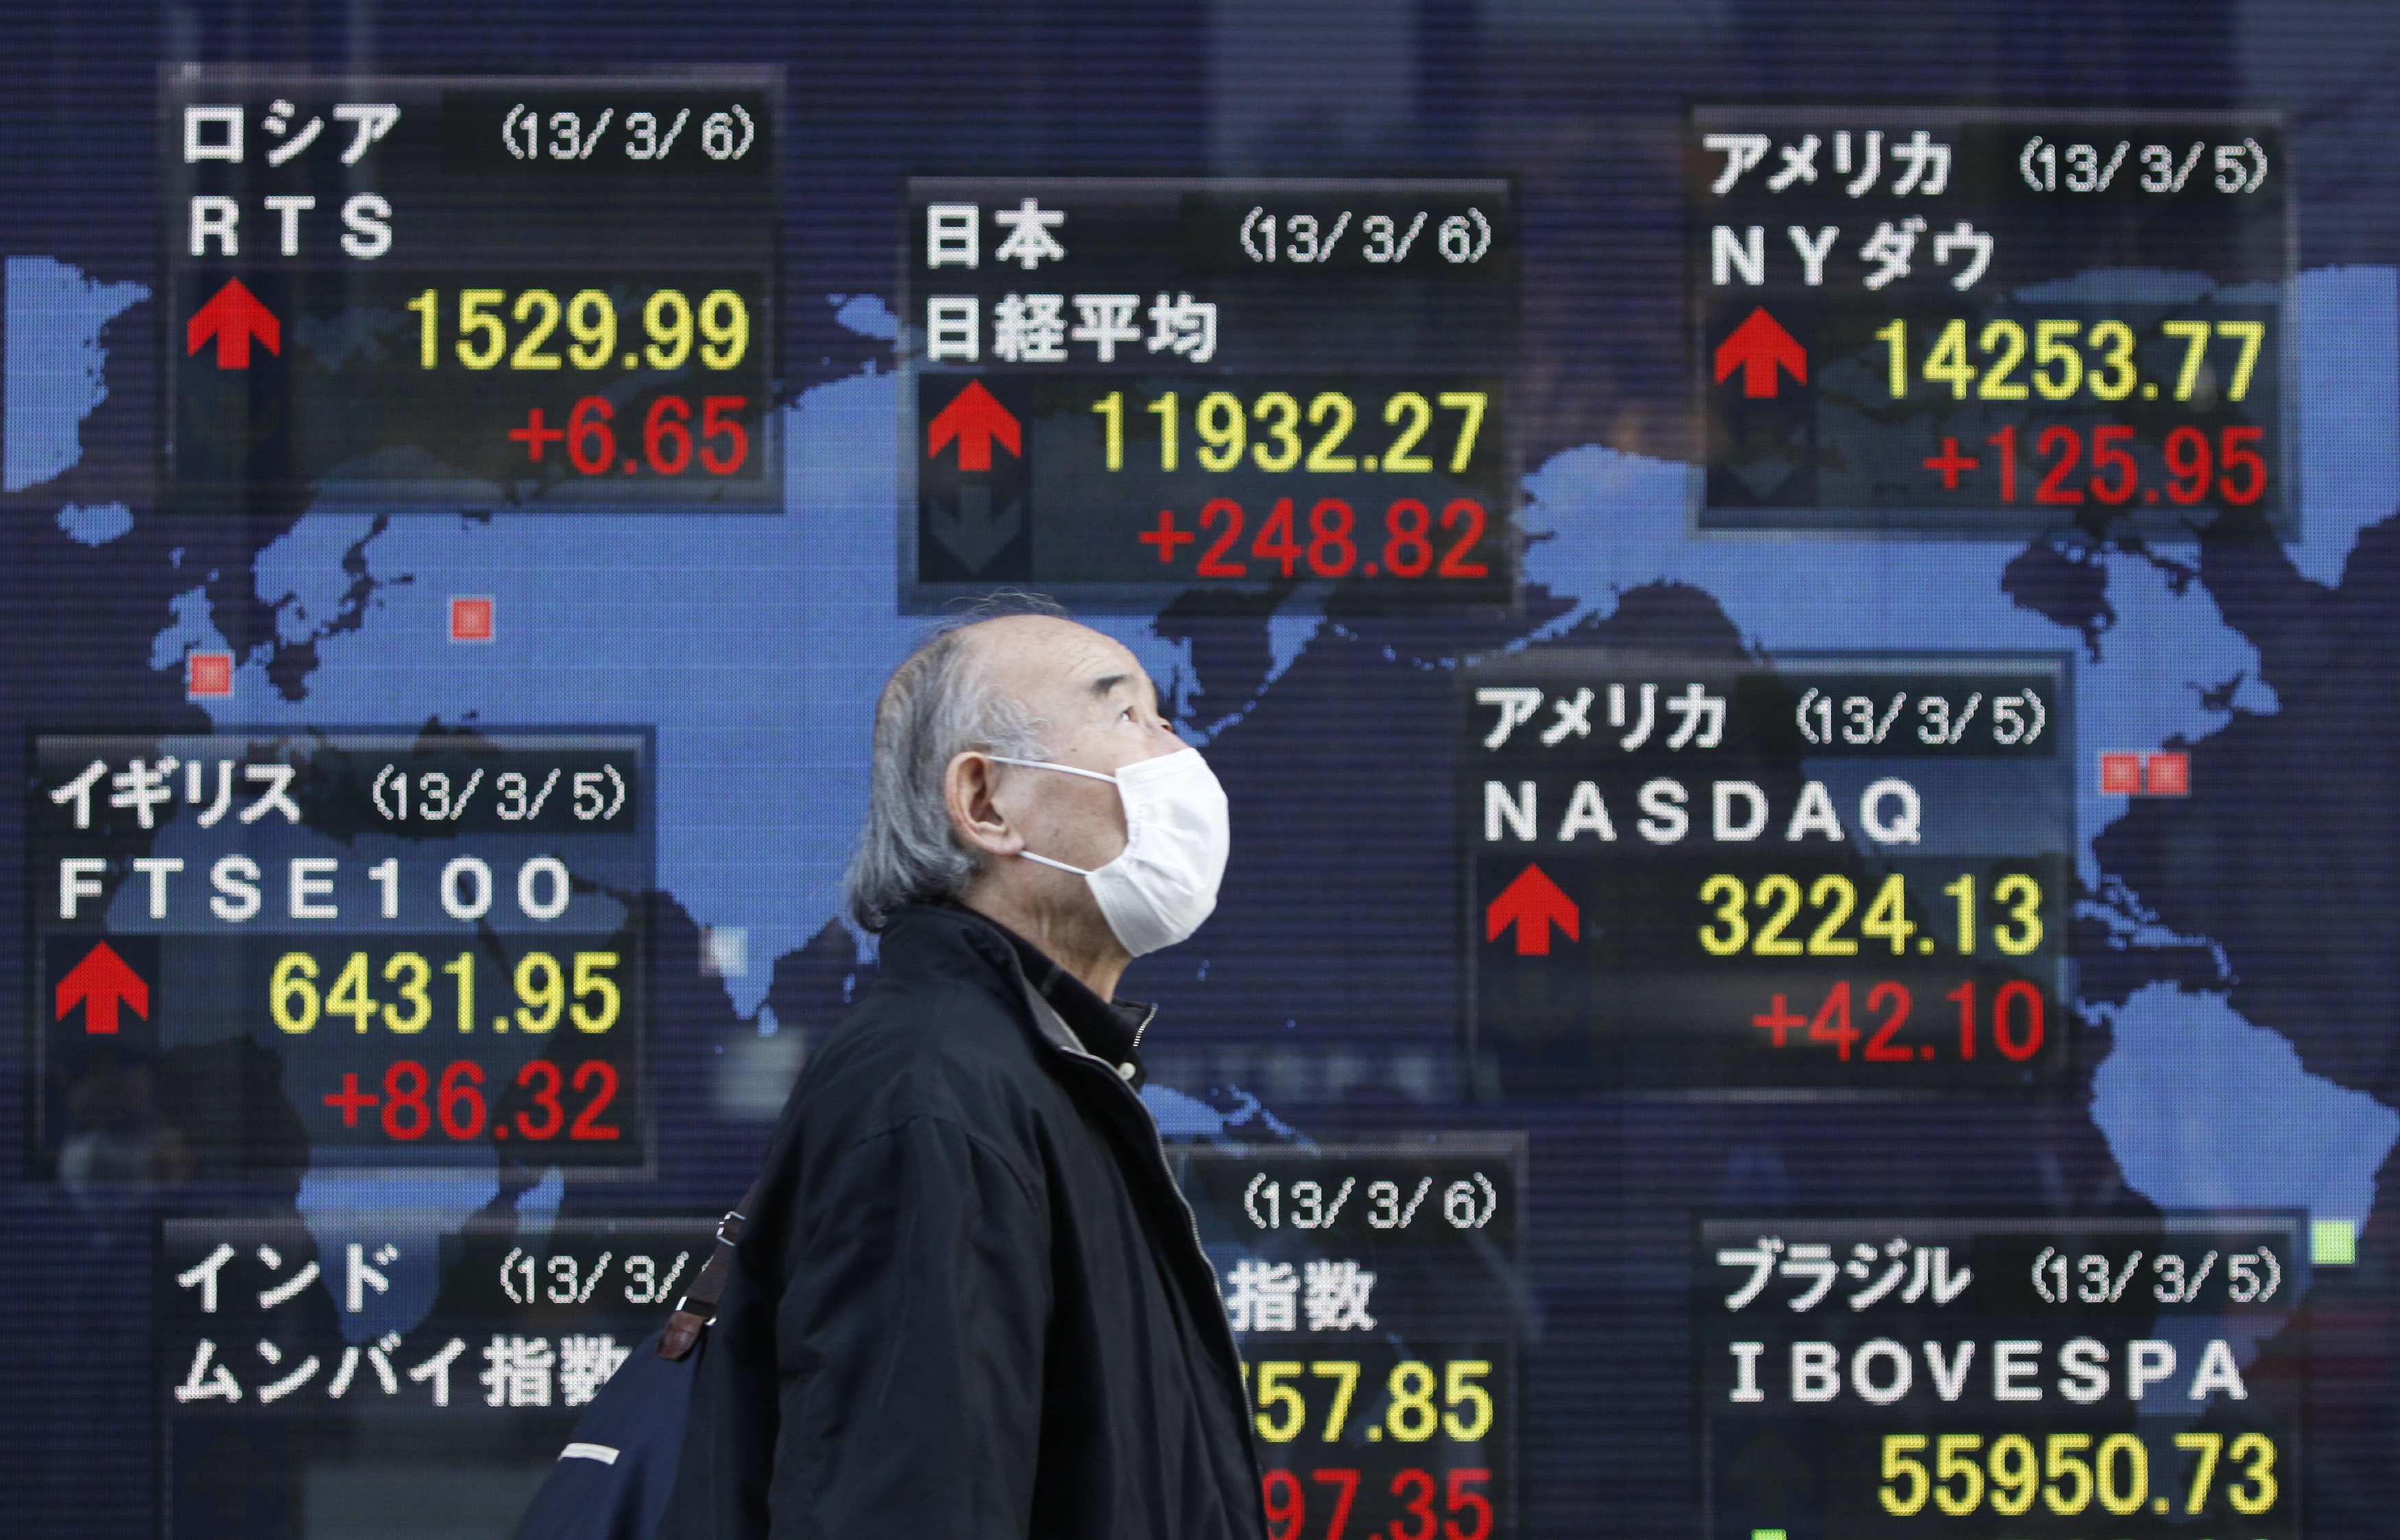 A man walks past a stock index board showing various countries' stock price index outside a brokerage in Tokyo March 6, 2013.  The Nikkei share average scaled a new 4-1/2 year high on Wednesday, within sight of the 12,000 mark, helped by a record closing on Wall Street and prospects of a reflationary policy in Japan to revive growth. REUTERS/Yuya Shino (JAPAN - Tags: BUSINESS) - GM1E93619P201